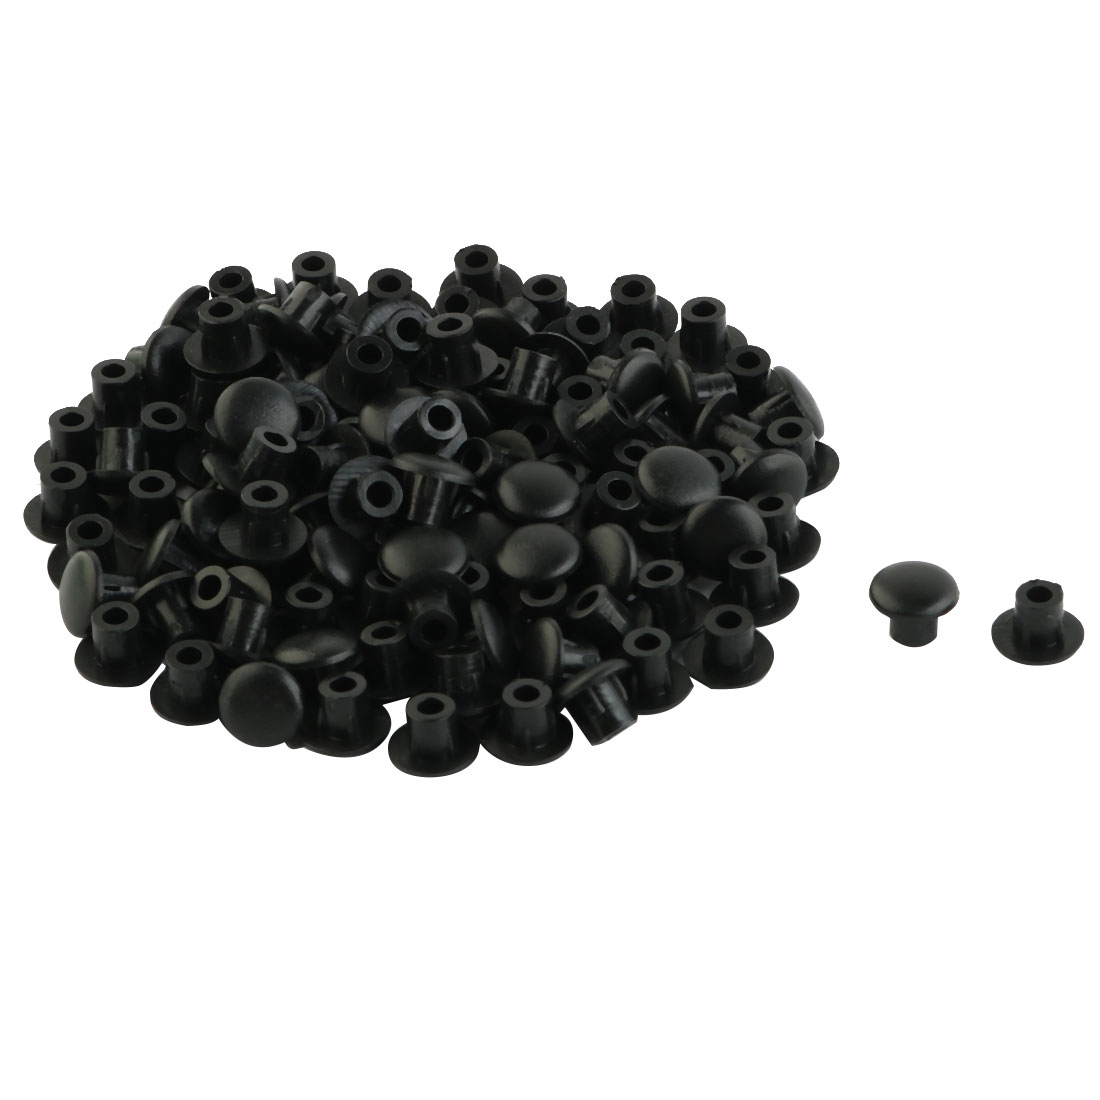 Home Furniture Decor 5mm Black Plastic Hole Drilling Cover Plugs 100pcs